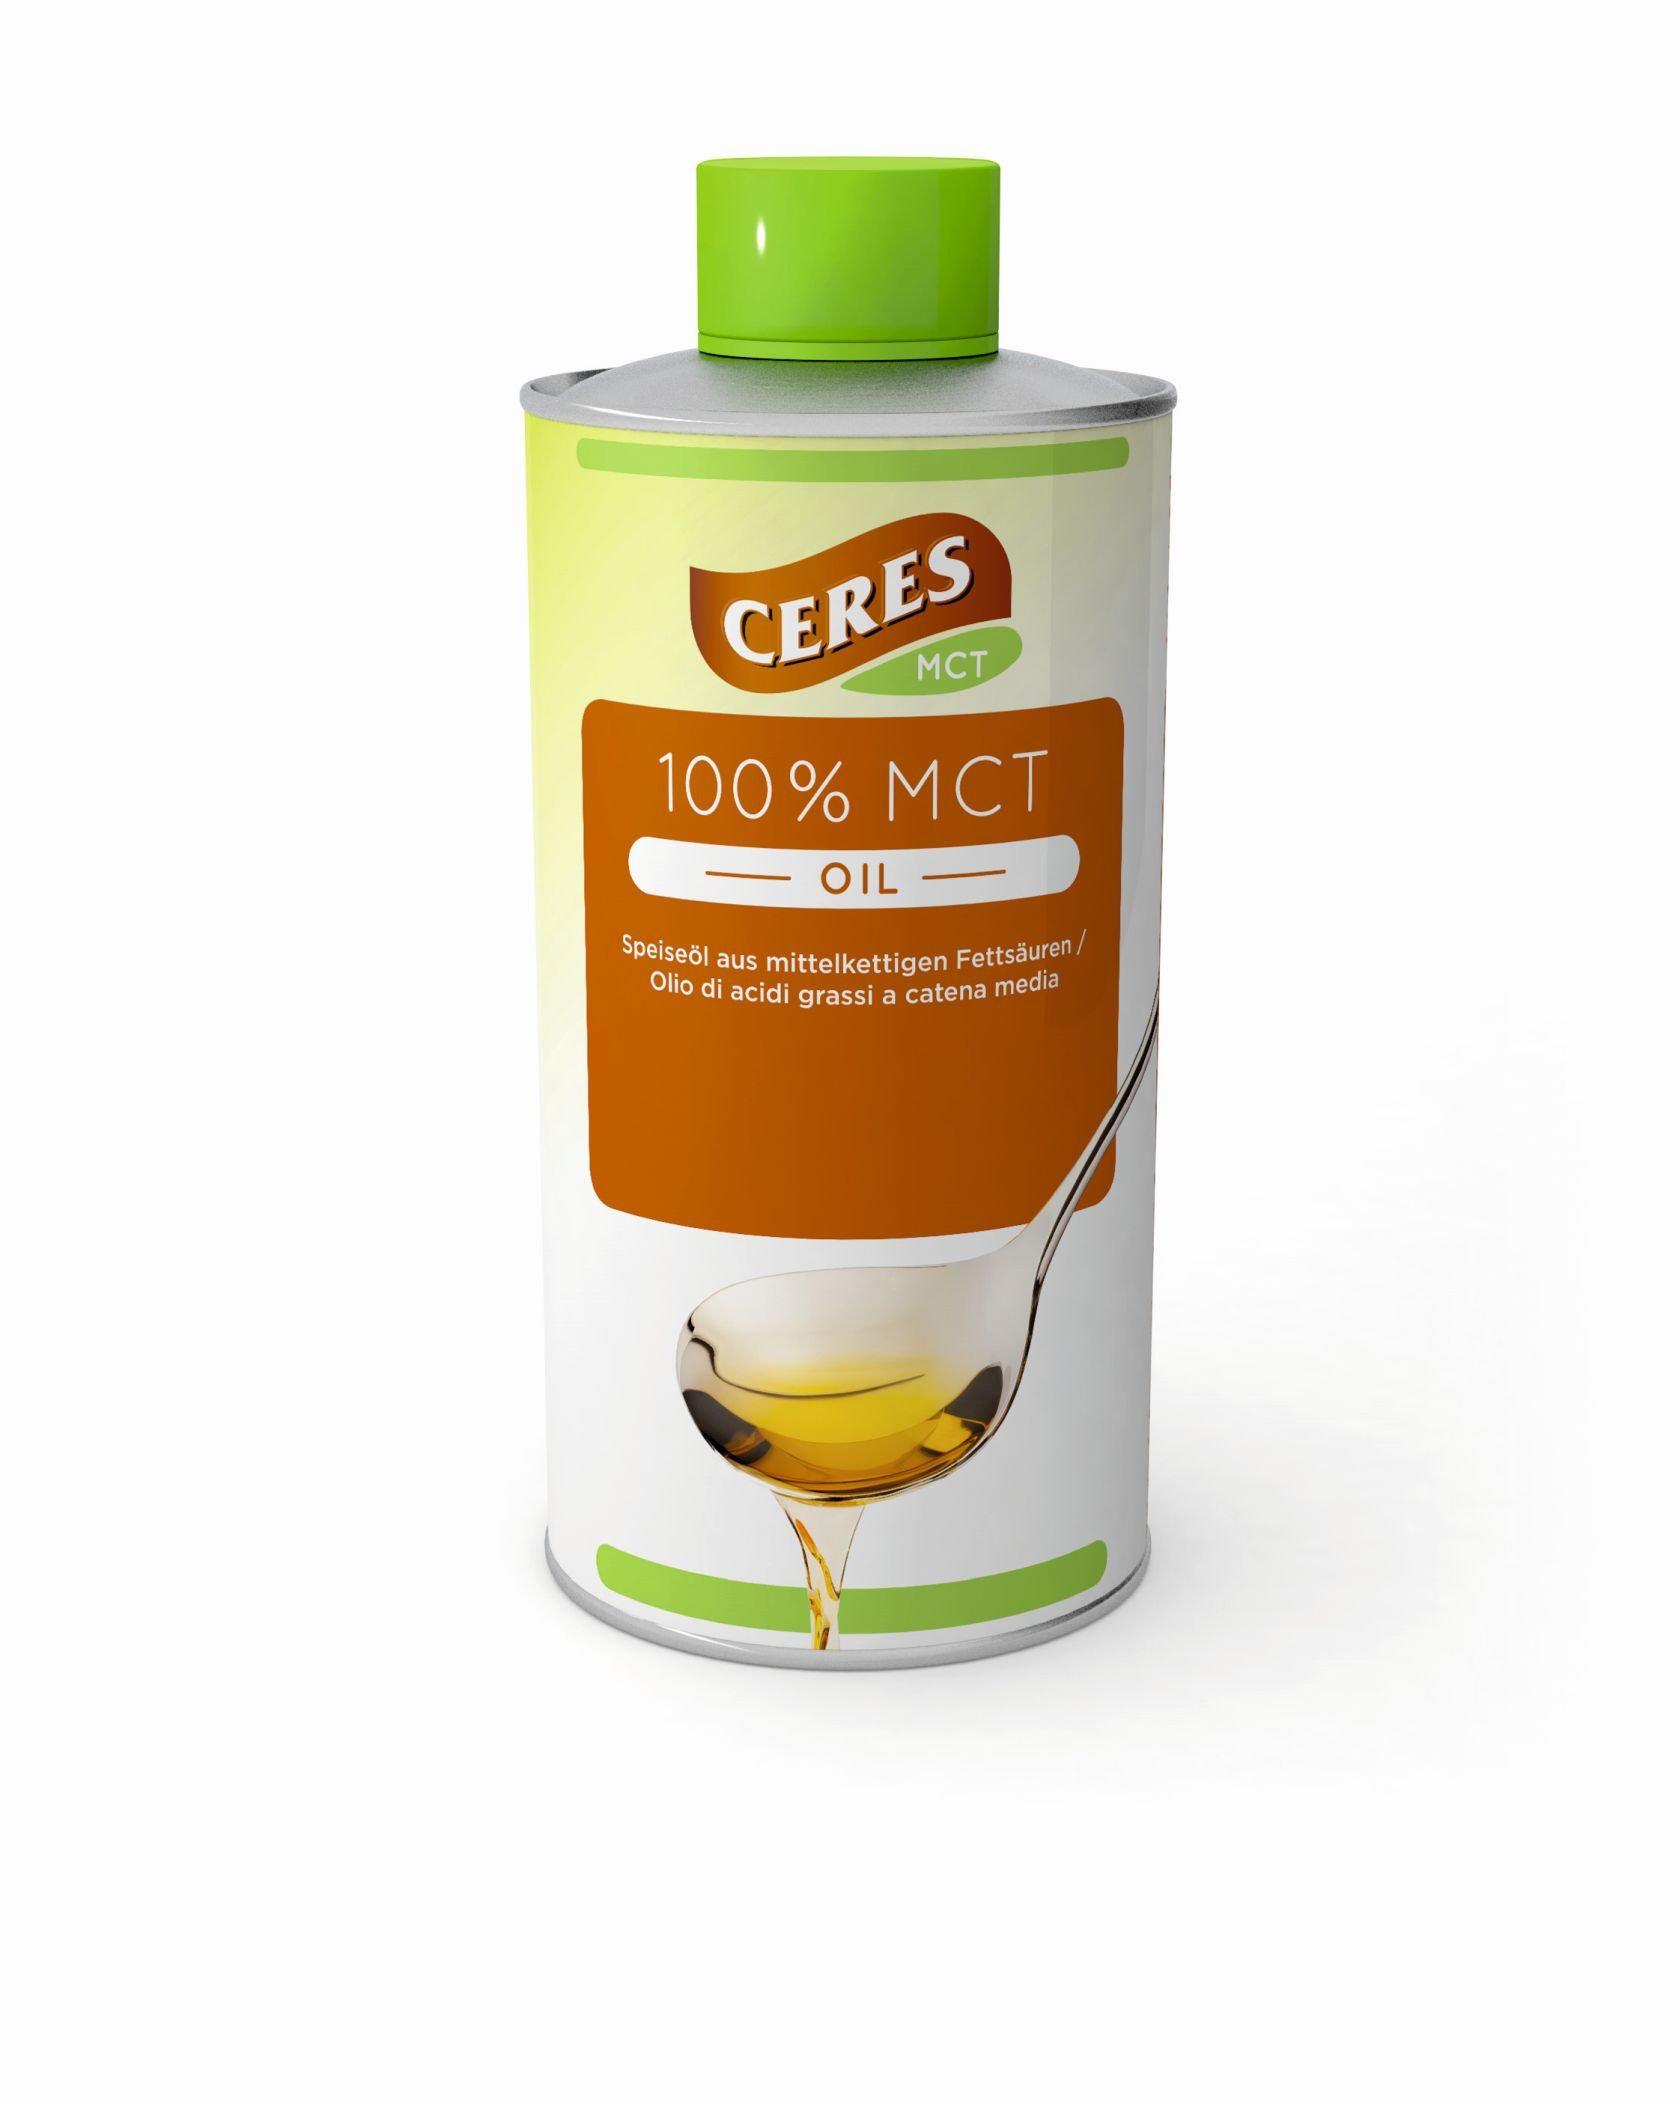 MCT ULJE CERES 100% -MCT OIL CERES 100%